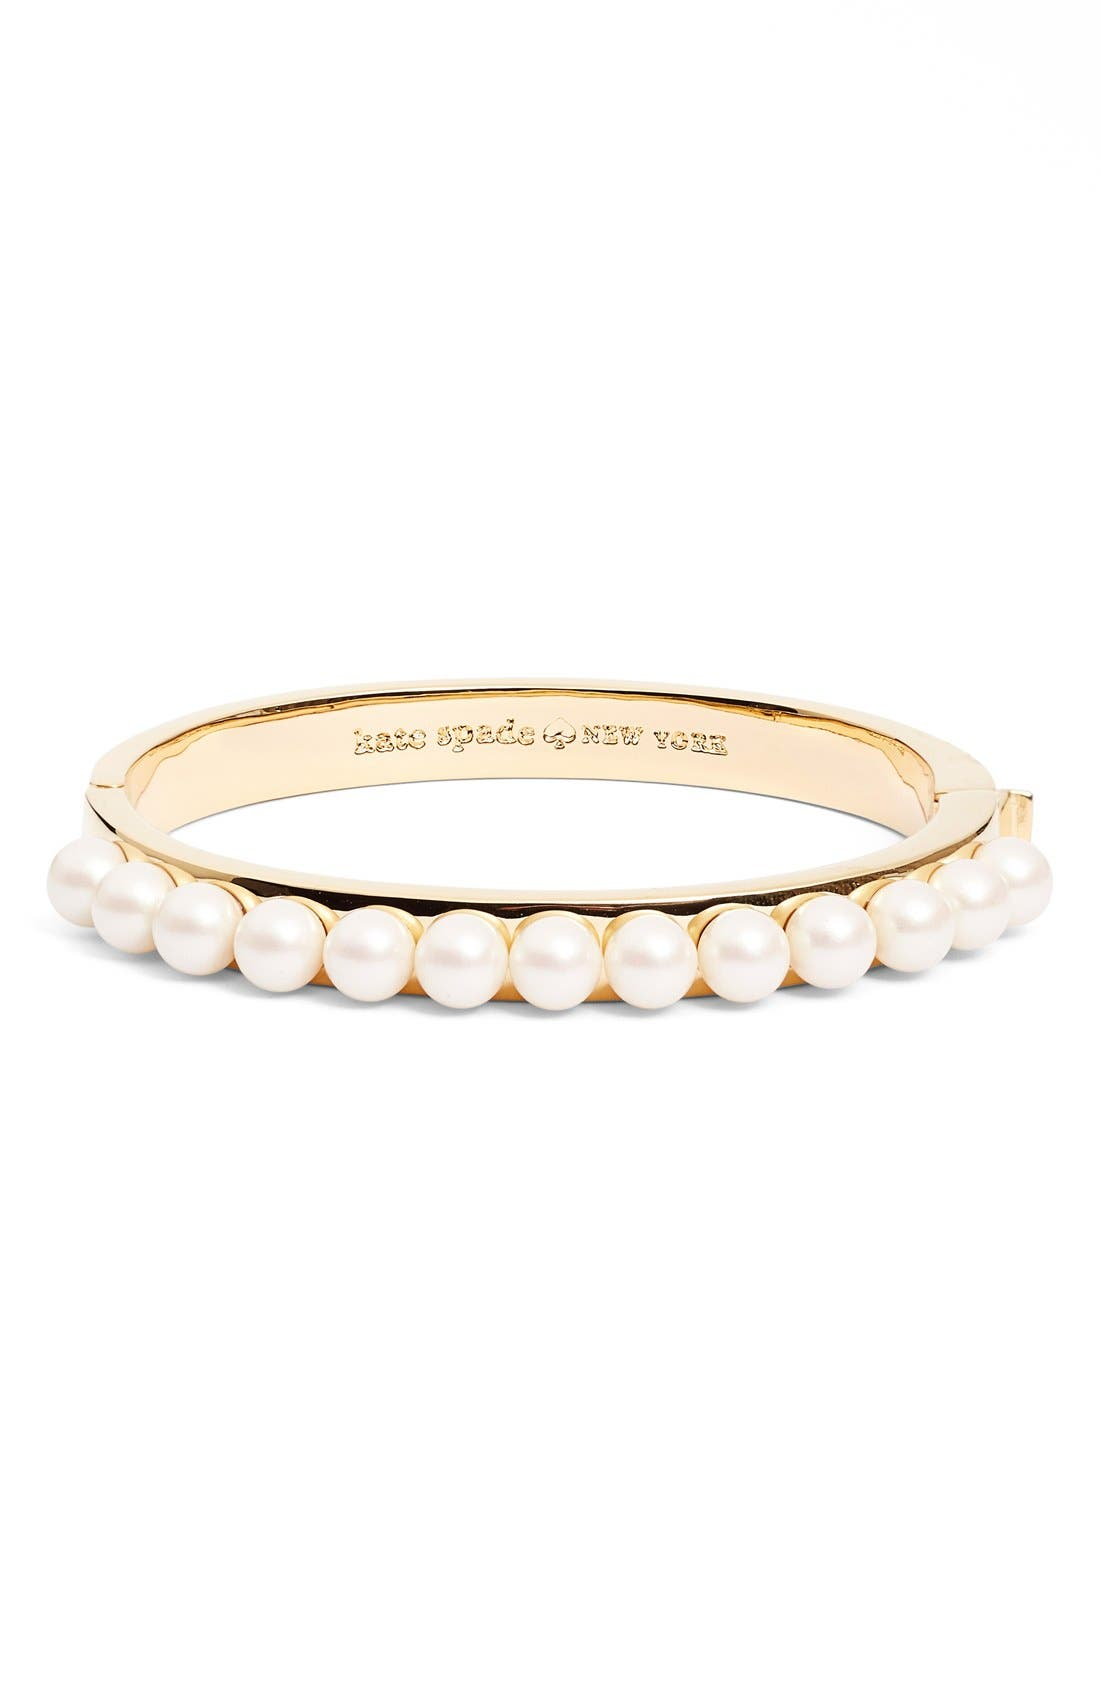 Alternate Image 1 Selected - kate spade new york 'pearly delight' bangle